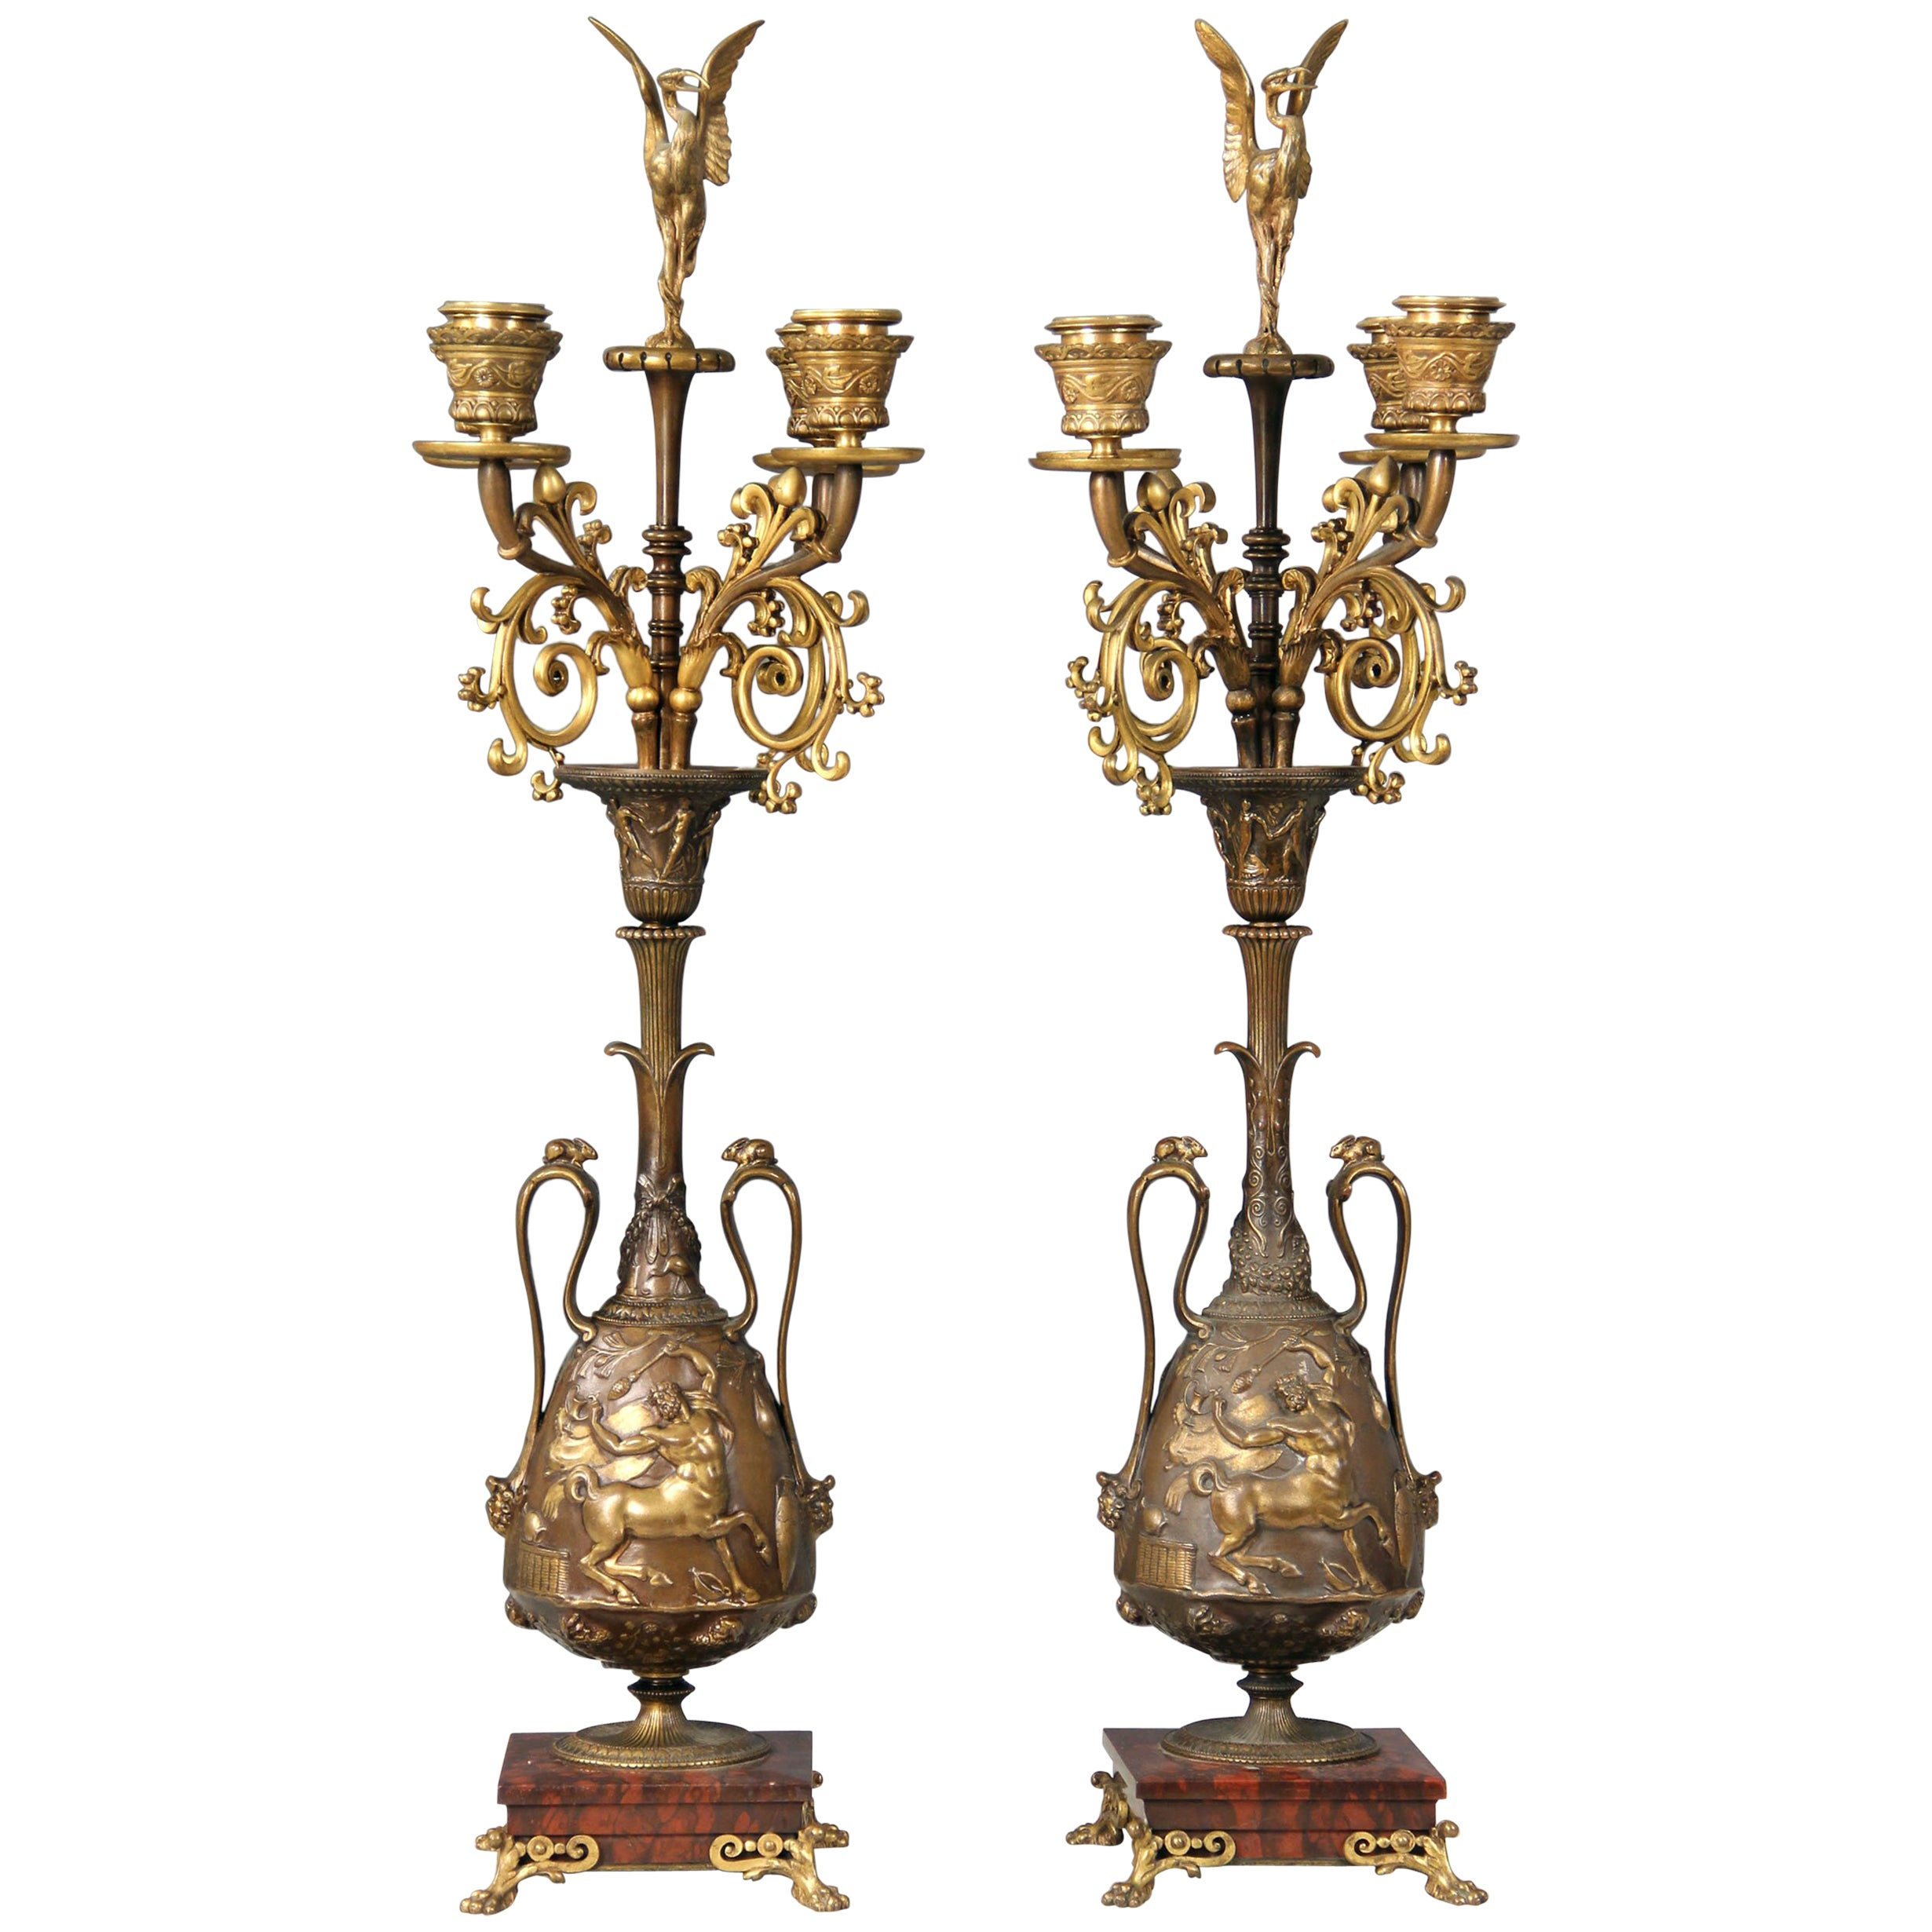 Pair of Late 19th Century Napoleon III Candelabra by Levillian and Barbedienne